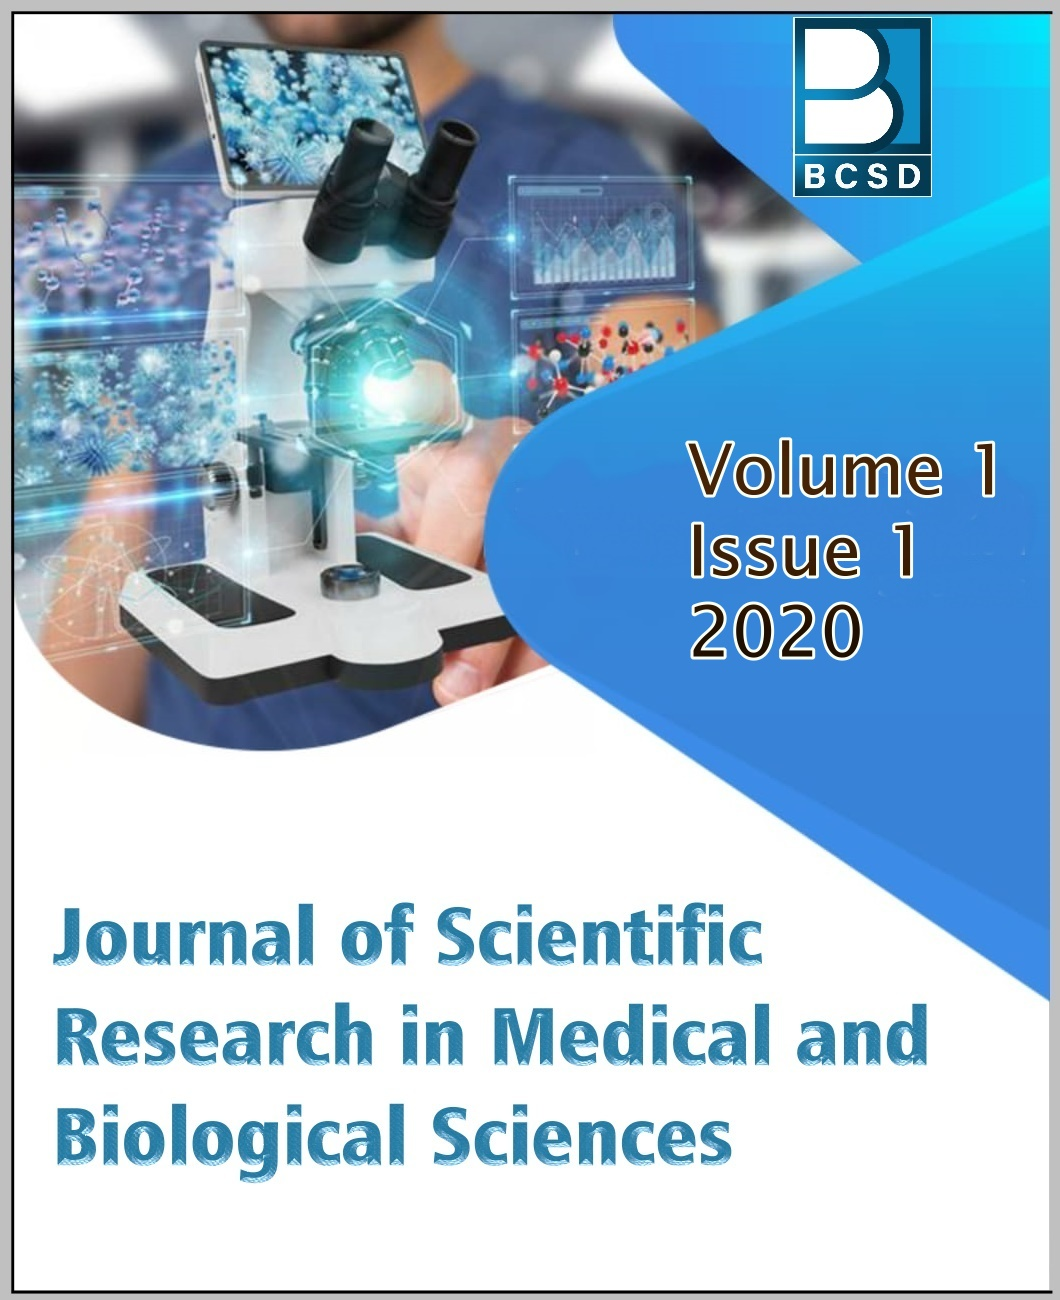 View Vol. 1 No. 1 (2020): Journal of Scientific Research in Medical and Biological Sciences